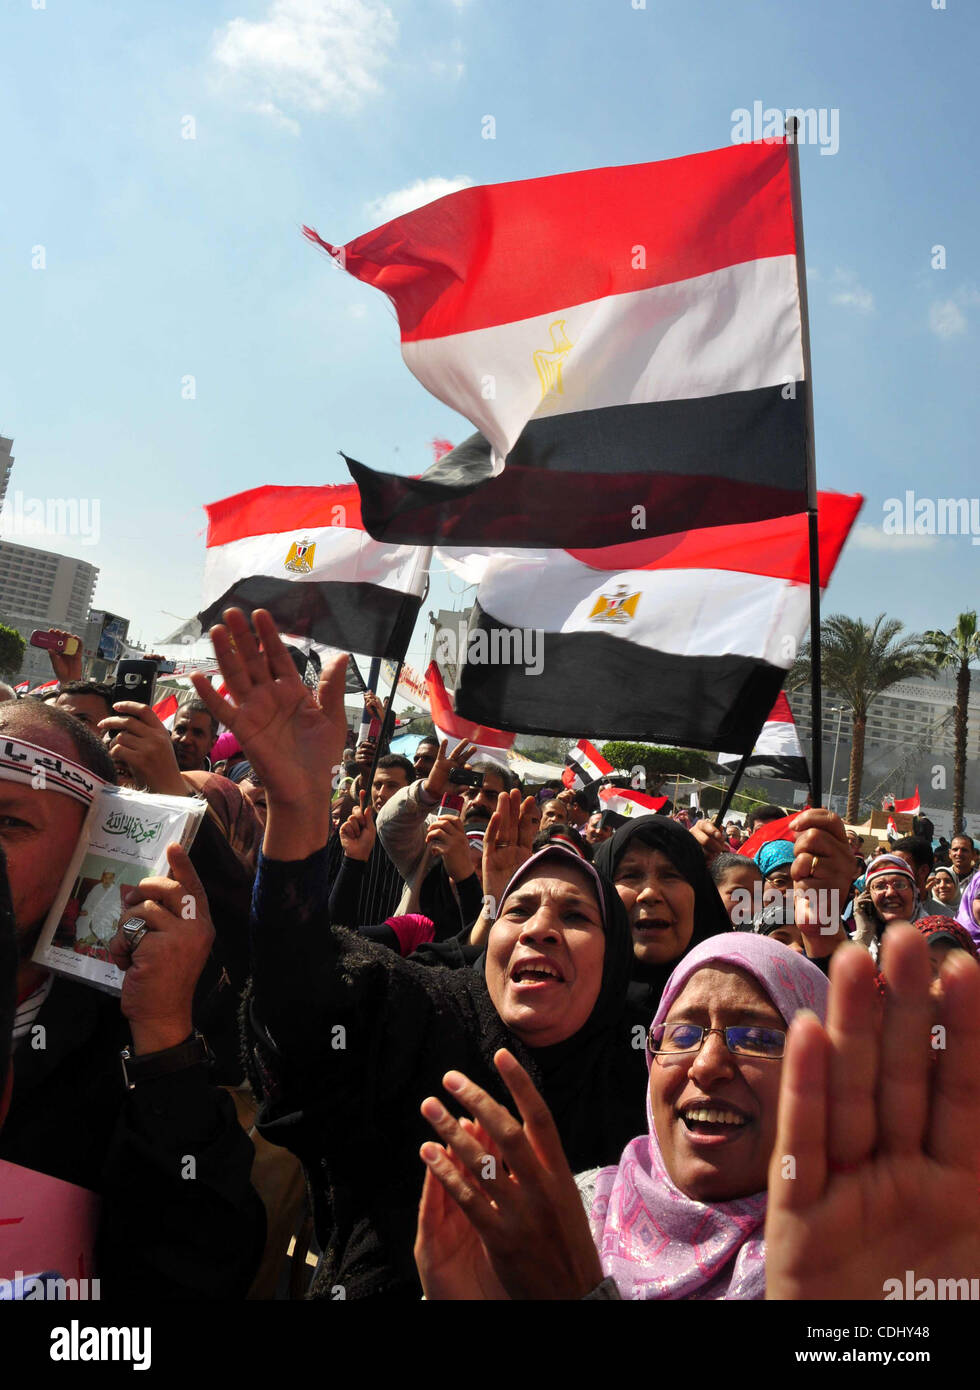 Egyptians celebrate and wave national flags in Tahrir Square in Cairo, Egypt, Saturday, Feb. 12, 2011. Egypt exploded Stock Photo